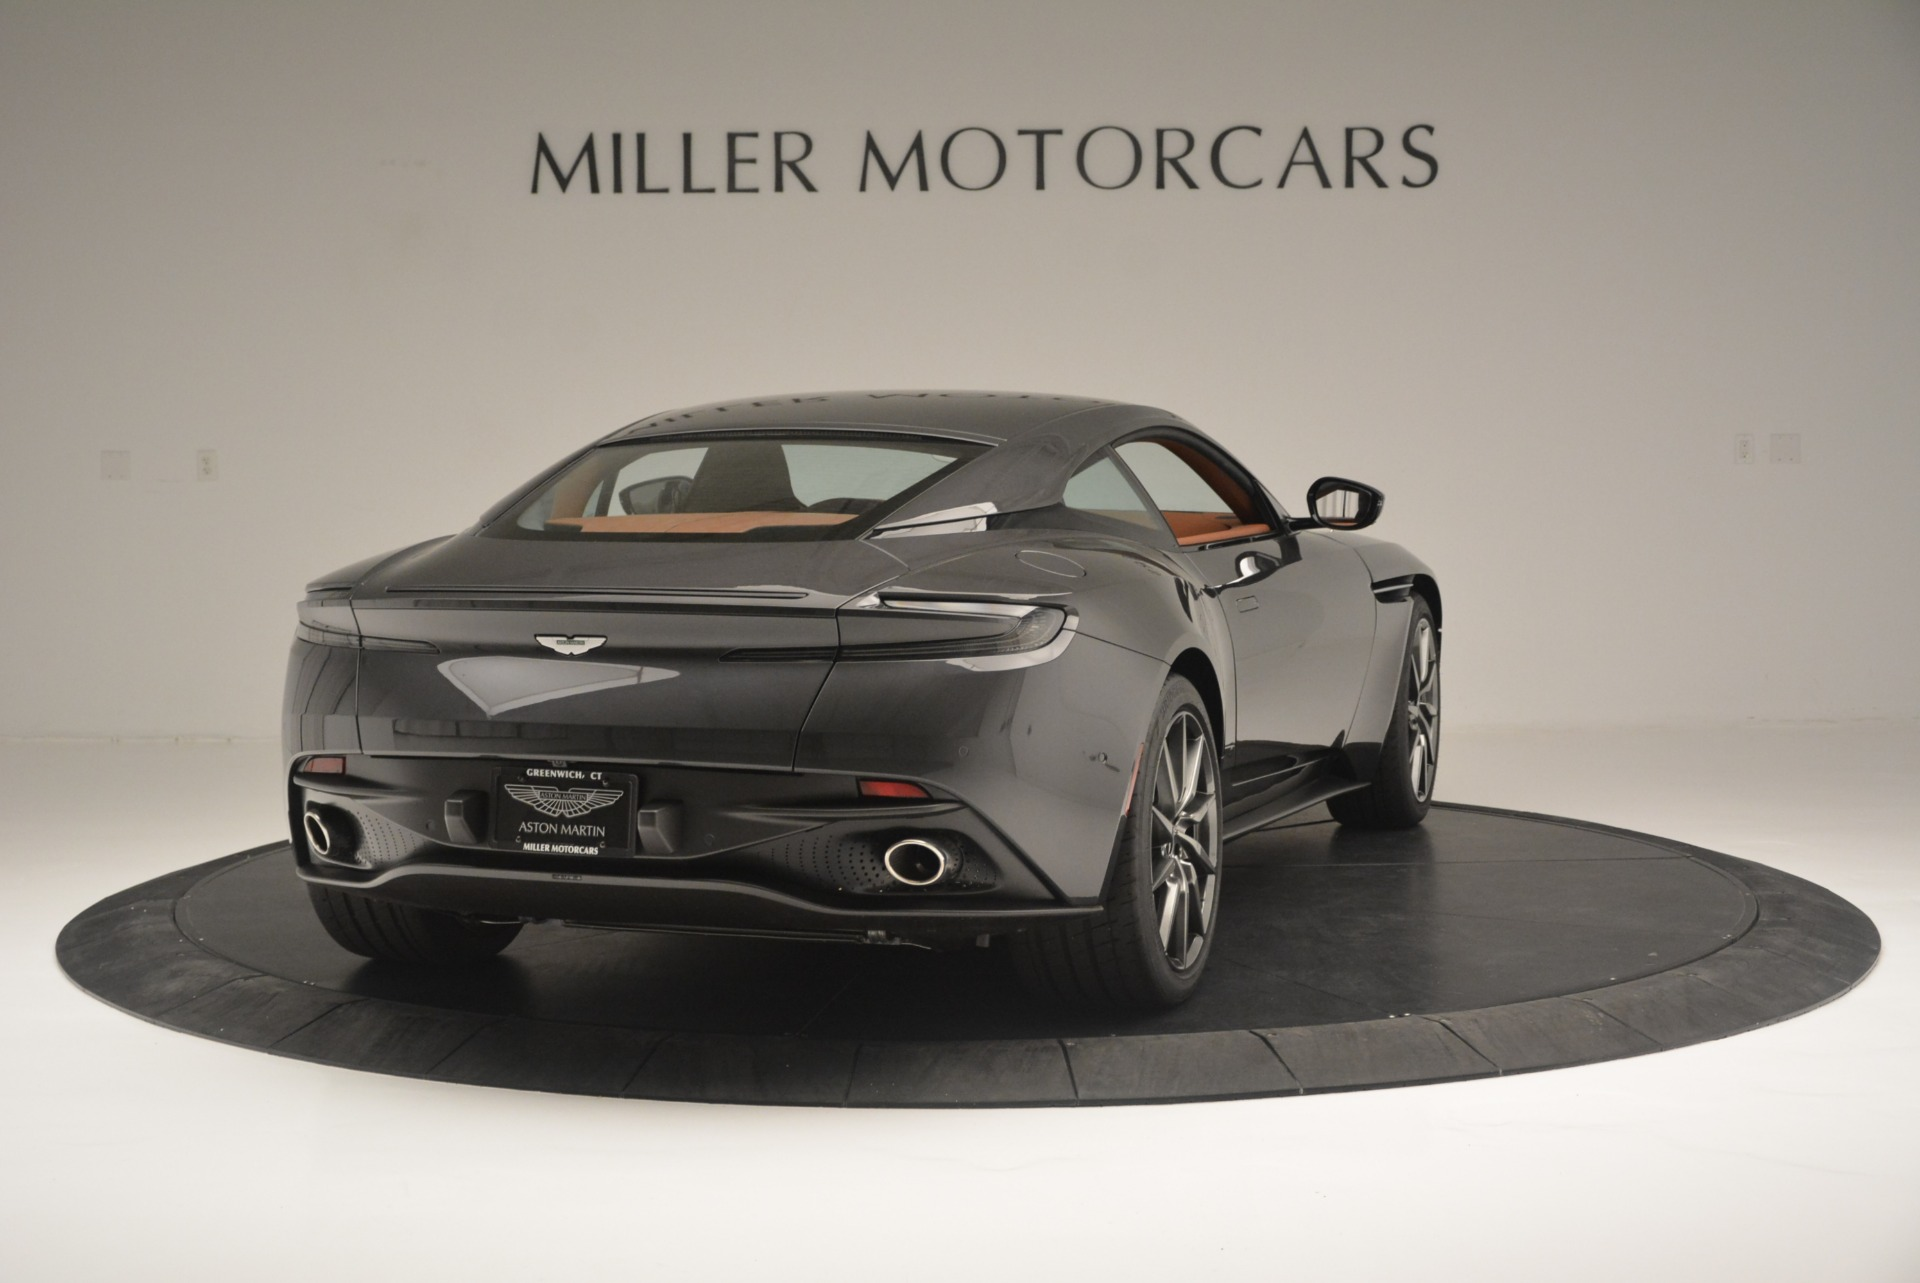 New 2018 Aston Martin DB11 V12 Coupe For Sale In Westport, CT 2226_p7